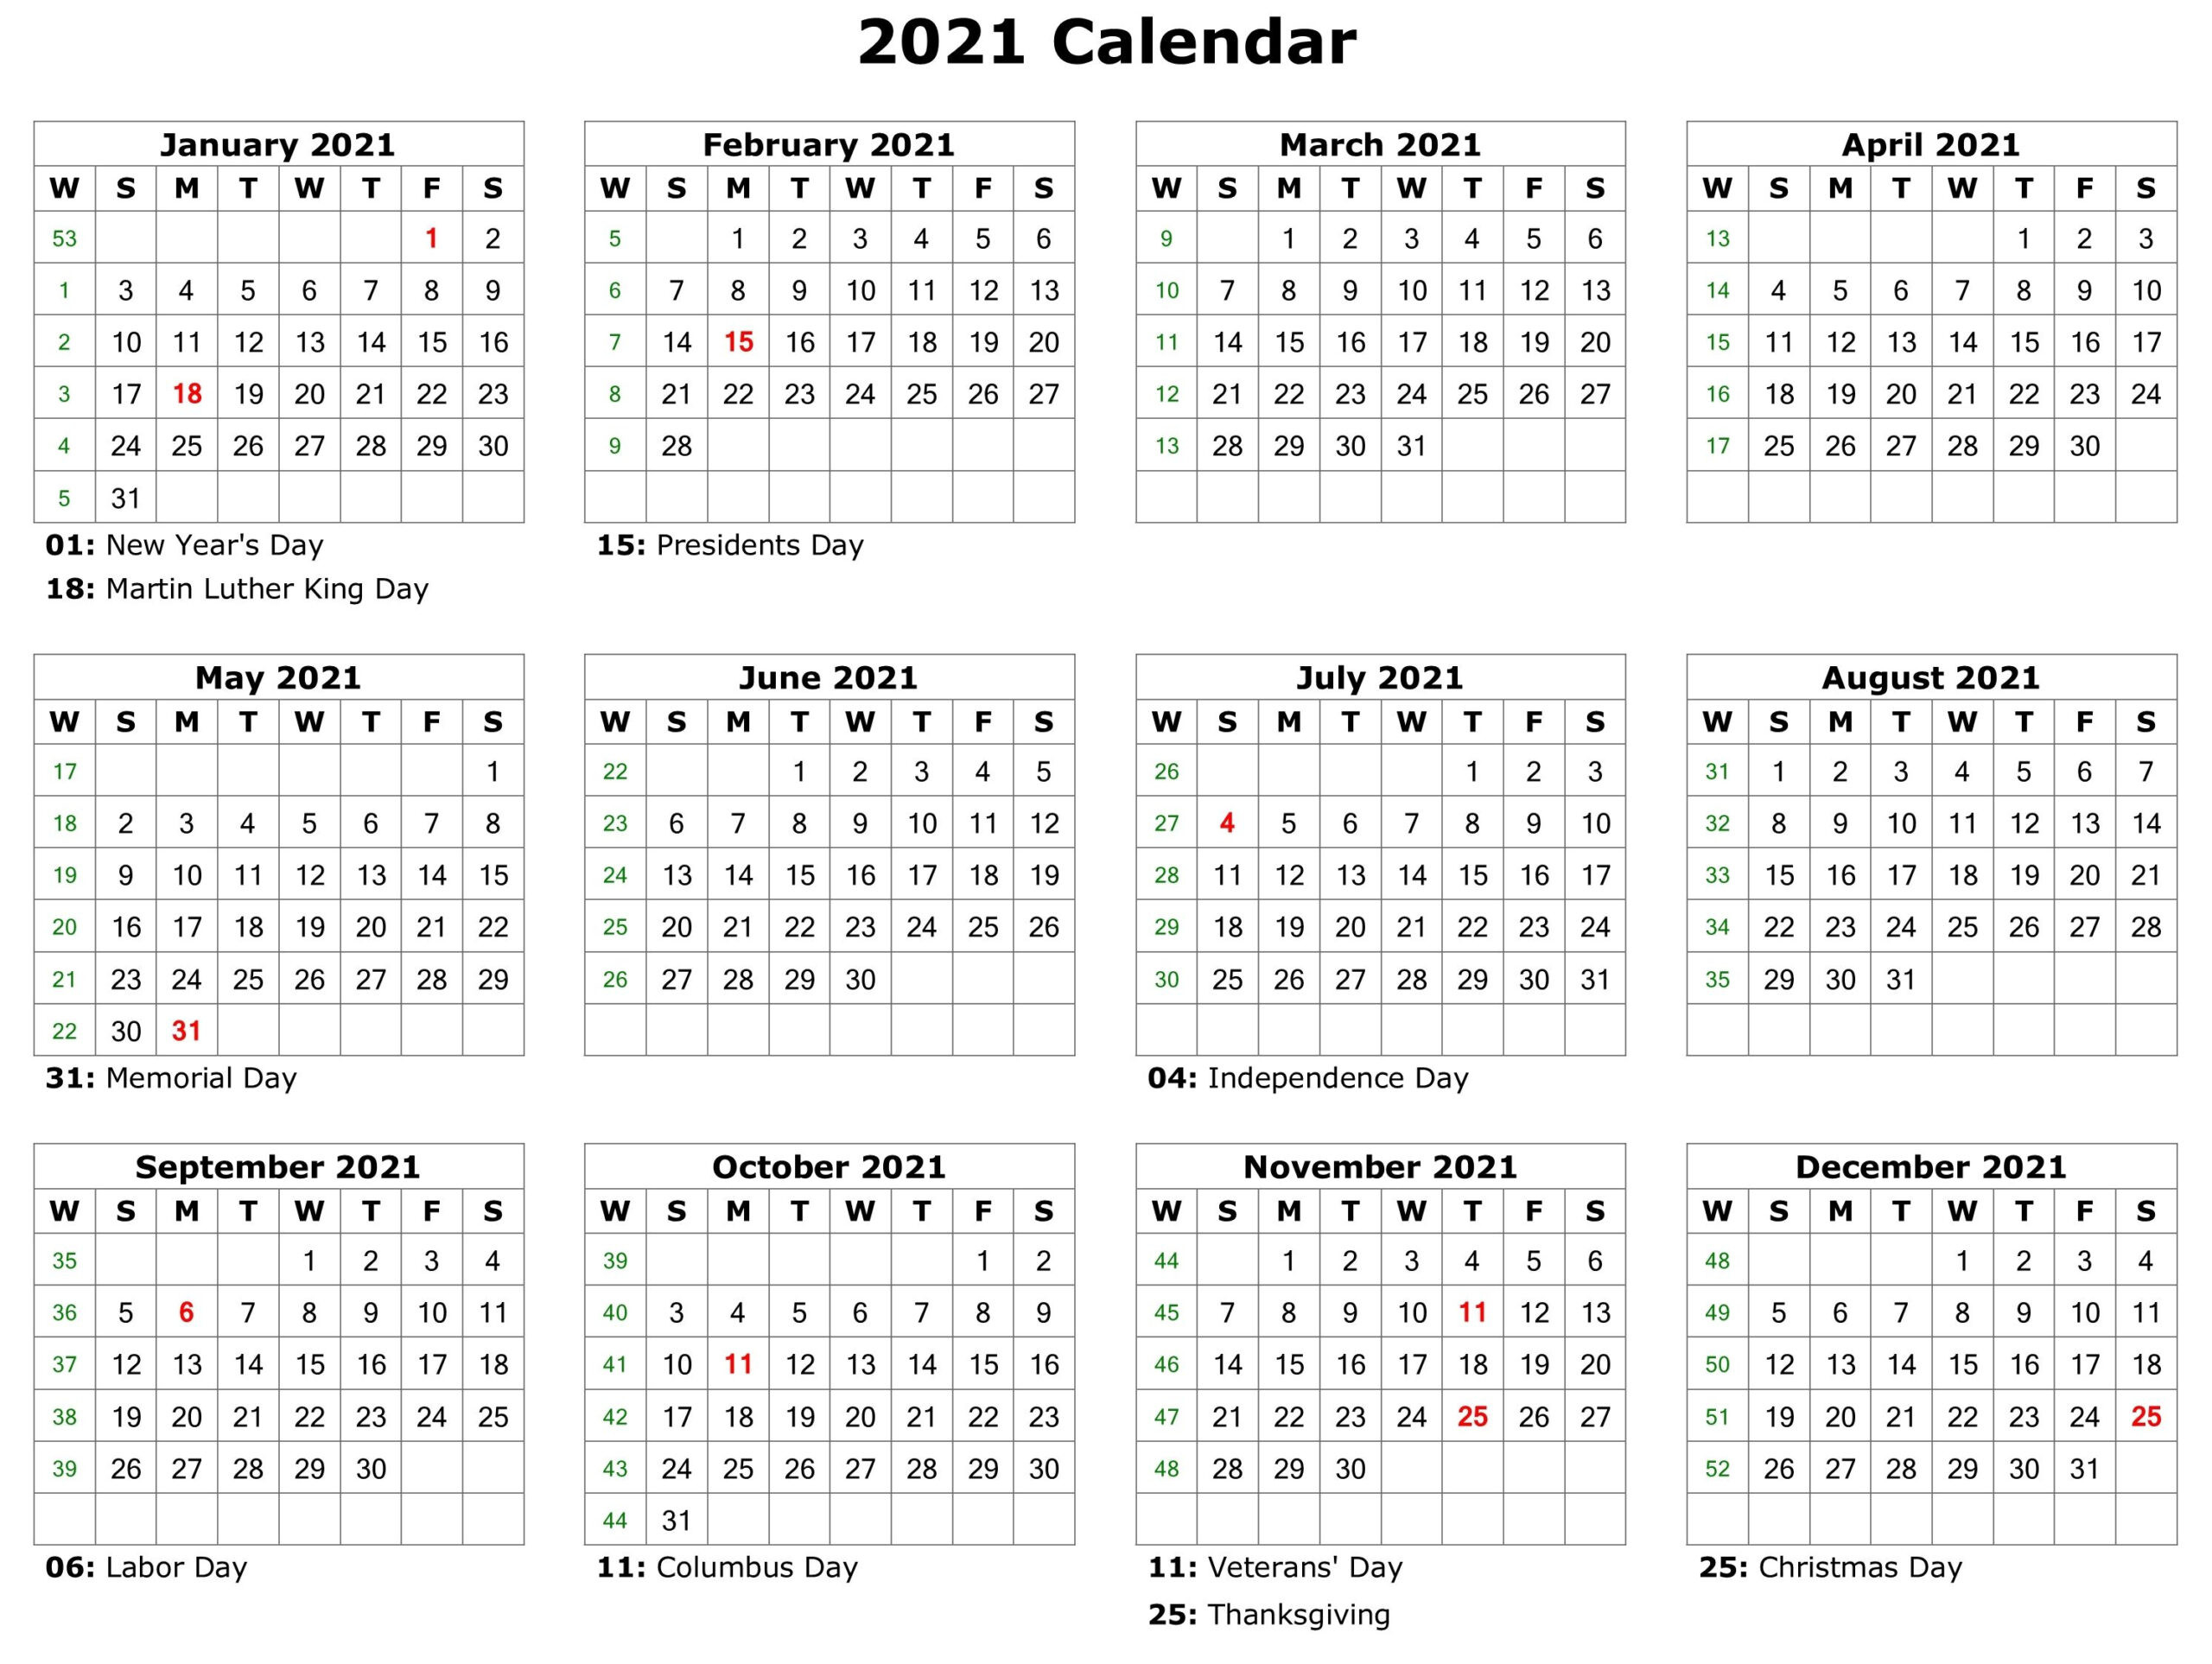 Free Print 2021 Calendars Without Downloading   Calendar  Free Printable Calendar 2021 Without Download